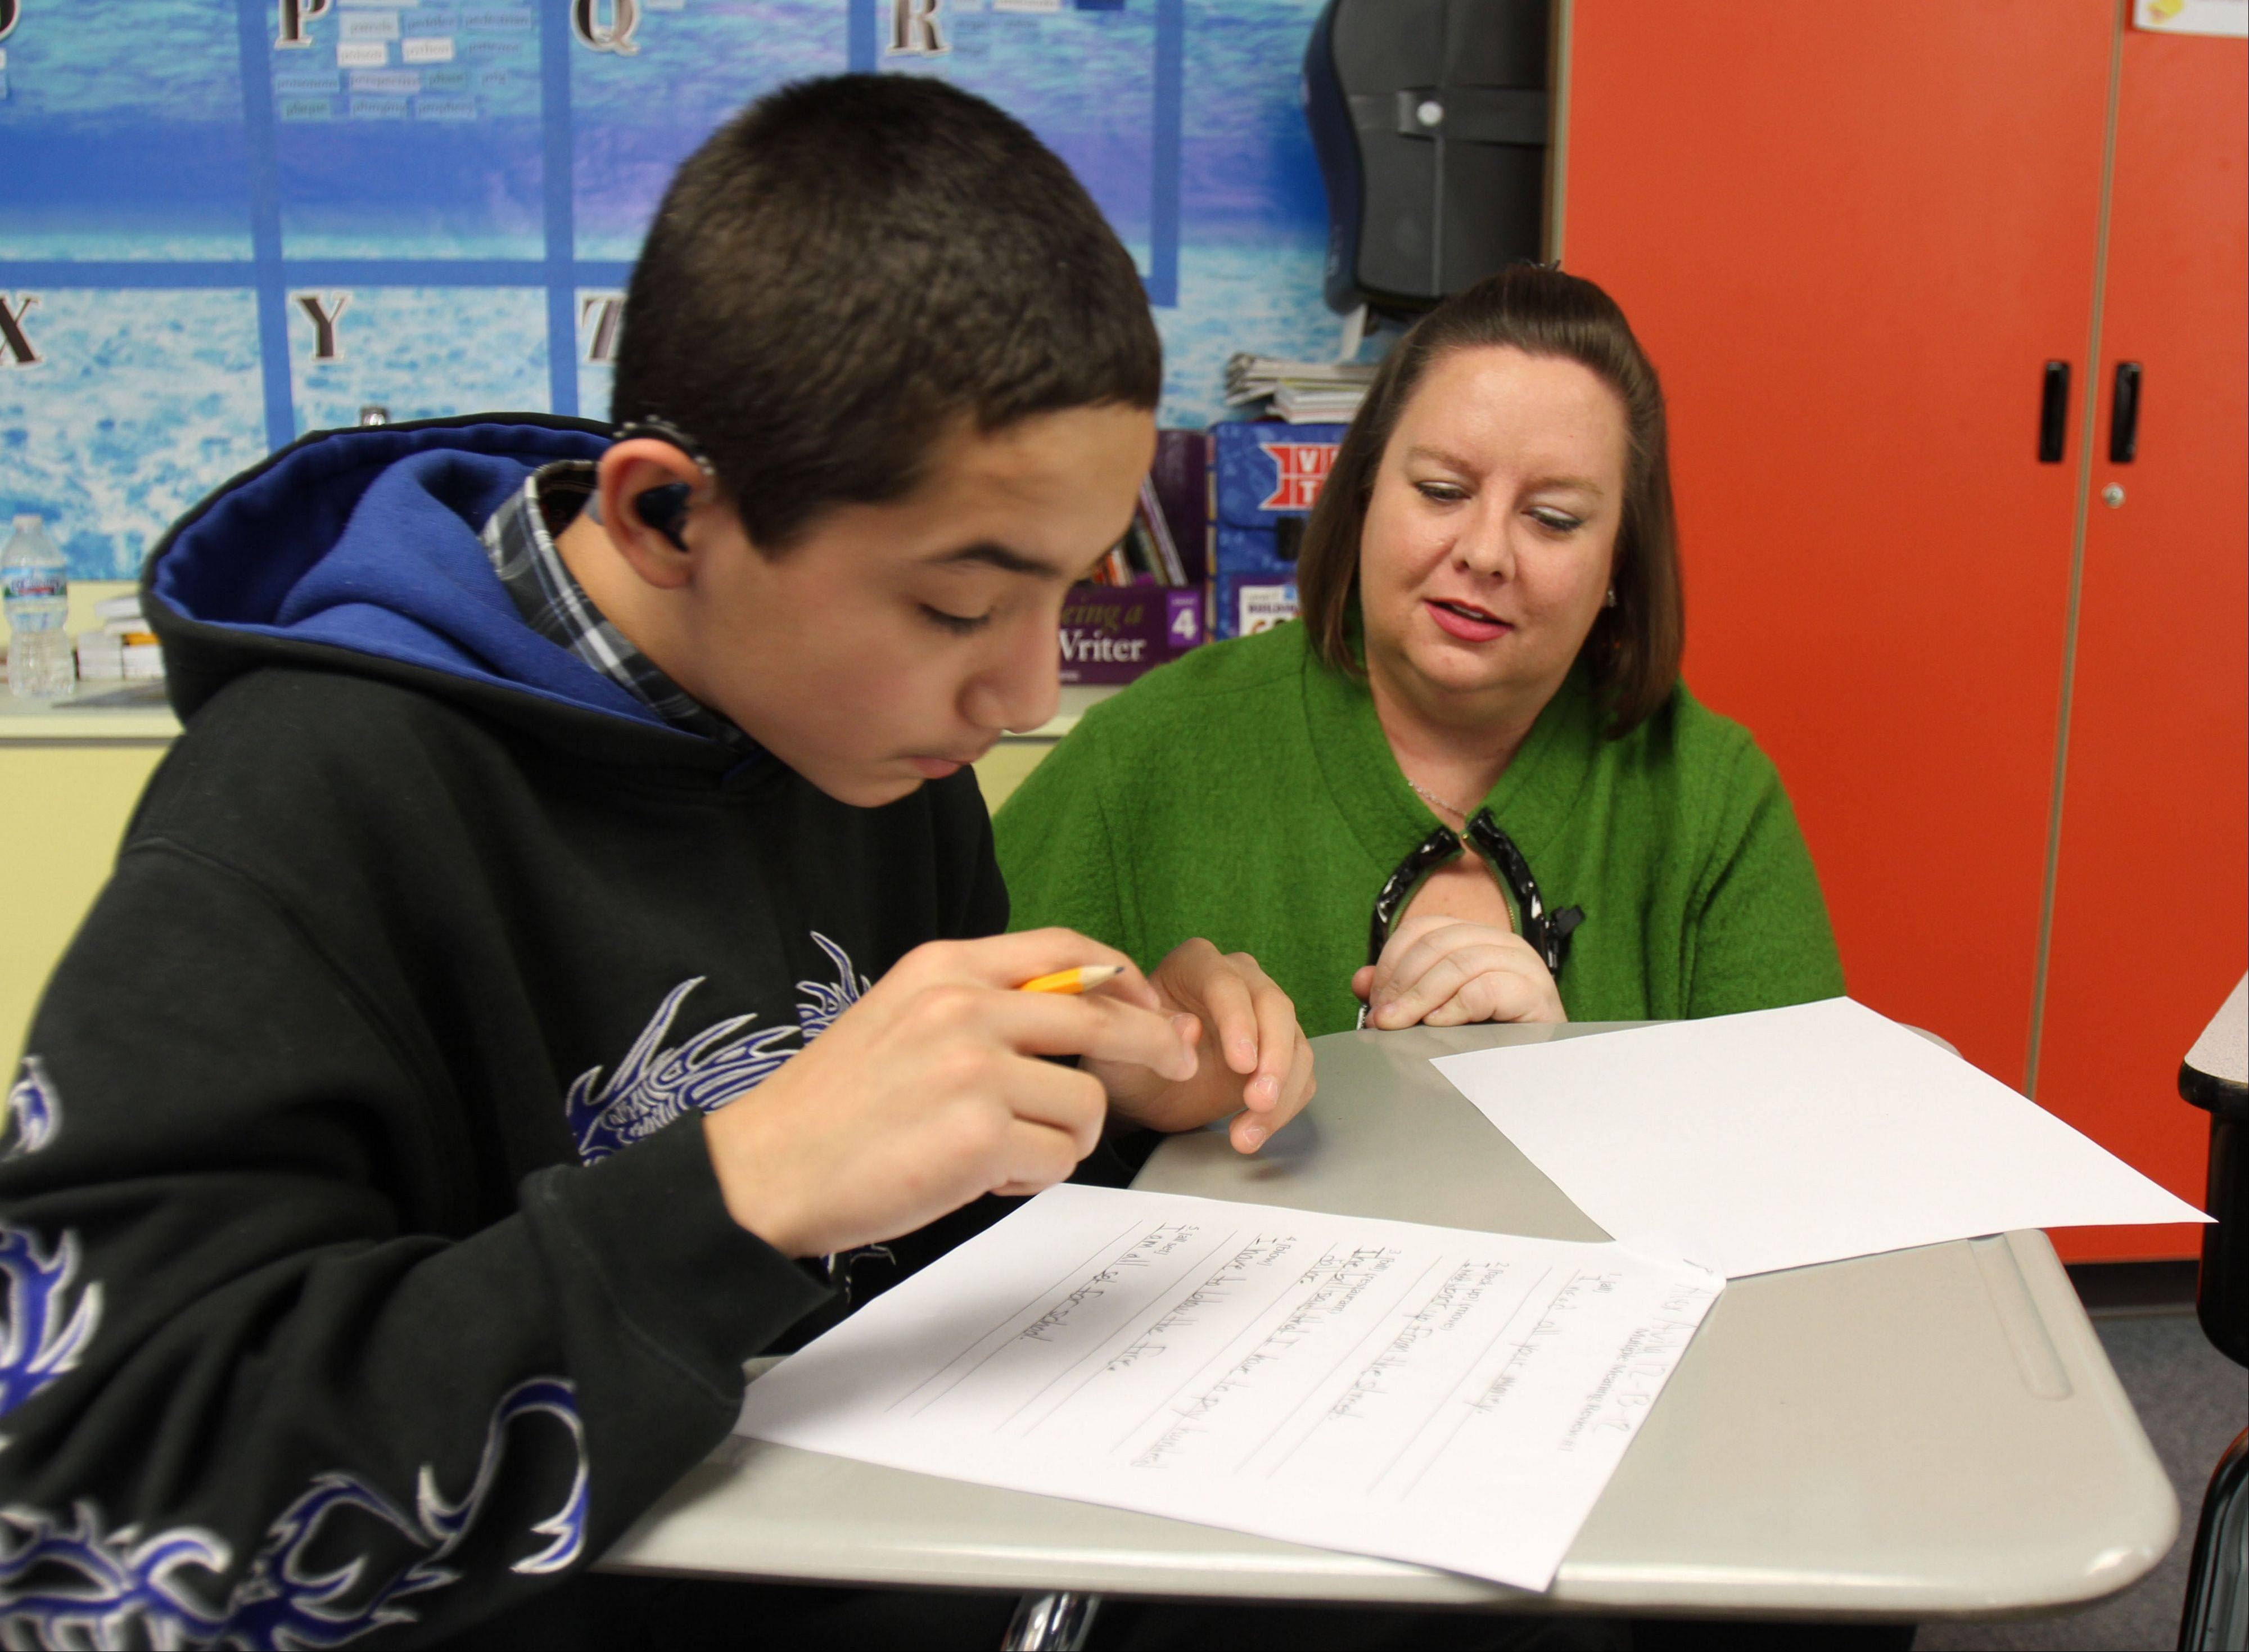 Abigail Currie, right, works on a language assignment with sixth-grader Alex Aliva in her class at the John Powers Center in Vernon Hills.